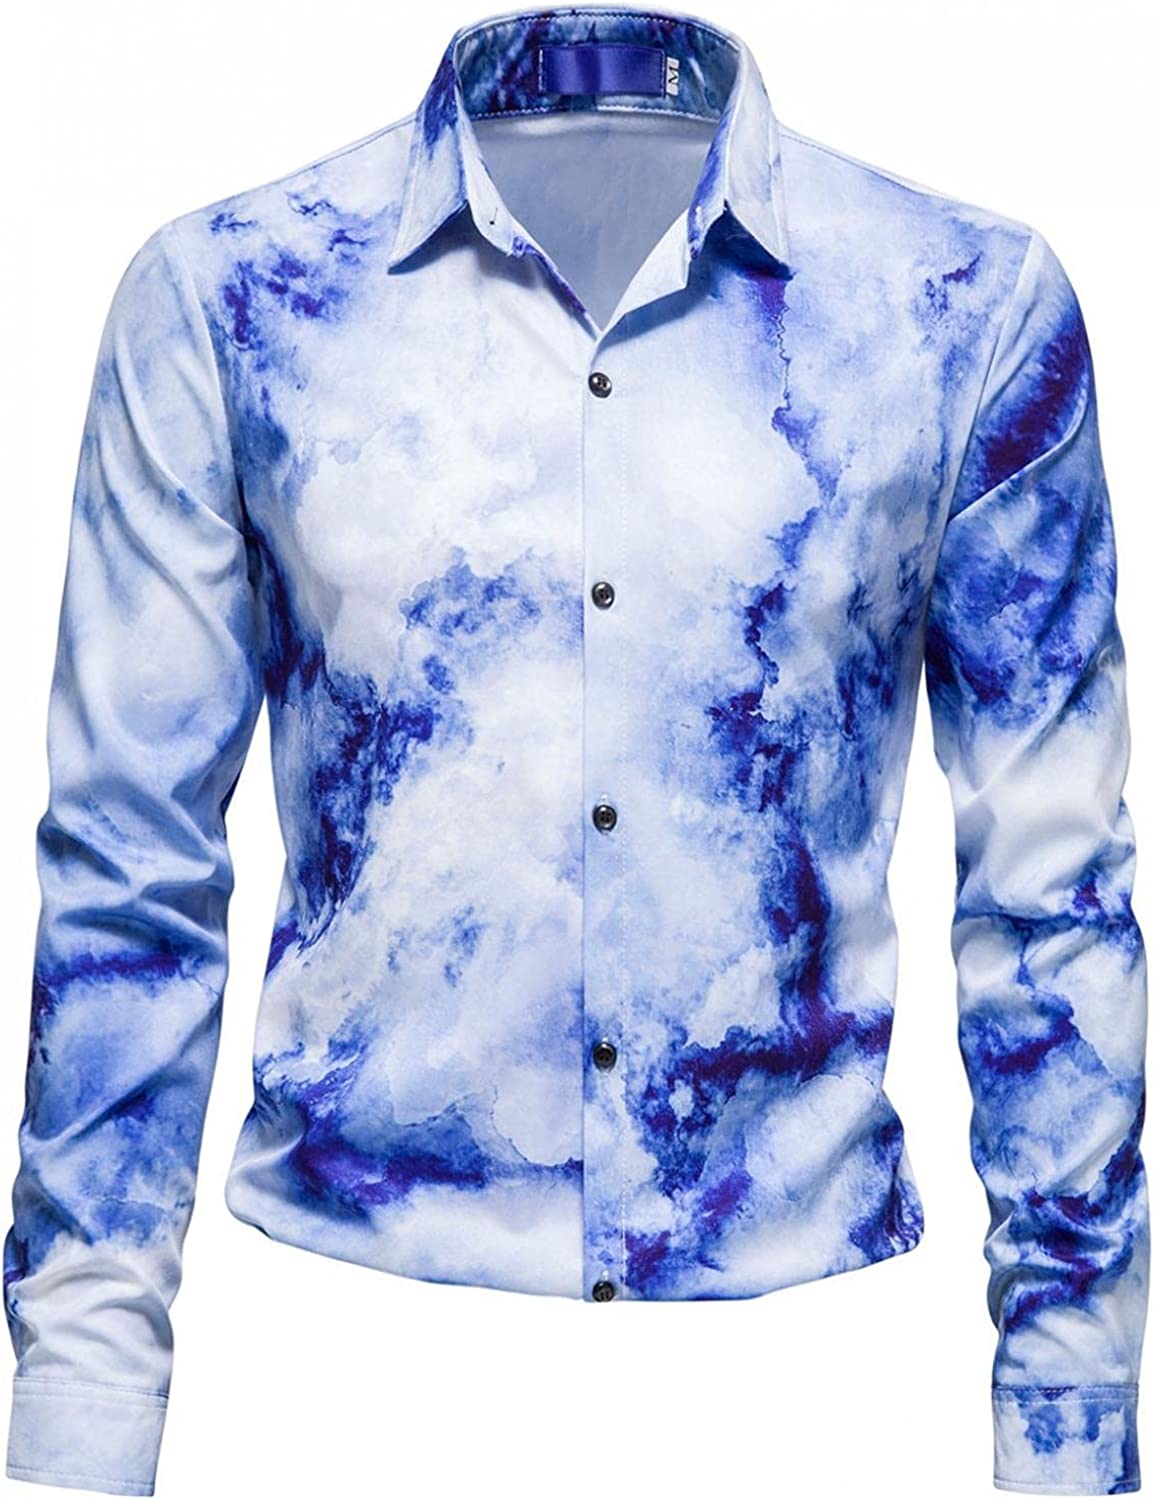 Mens Casual Shirts Long Sleeve Tie-Dye Print Button Down Tops Casual Loose Fit Tees Soft Comfy Cotton Blouse